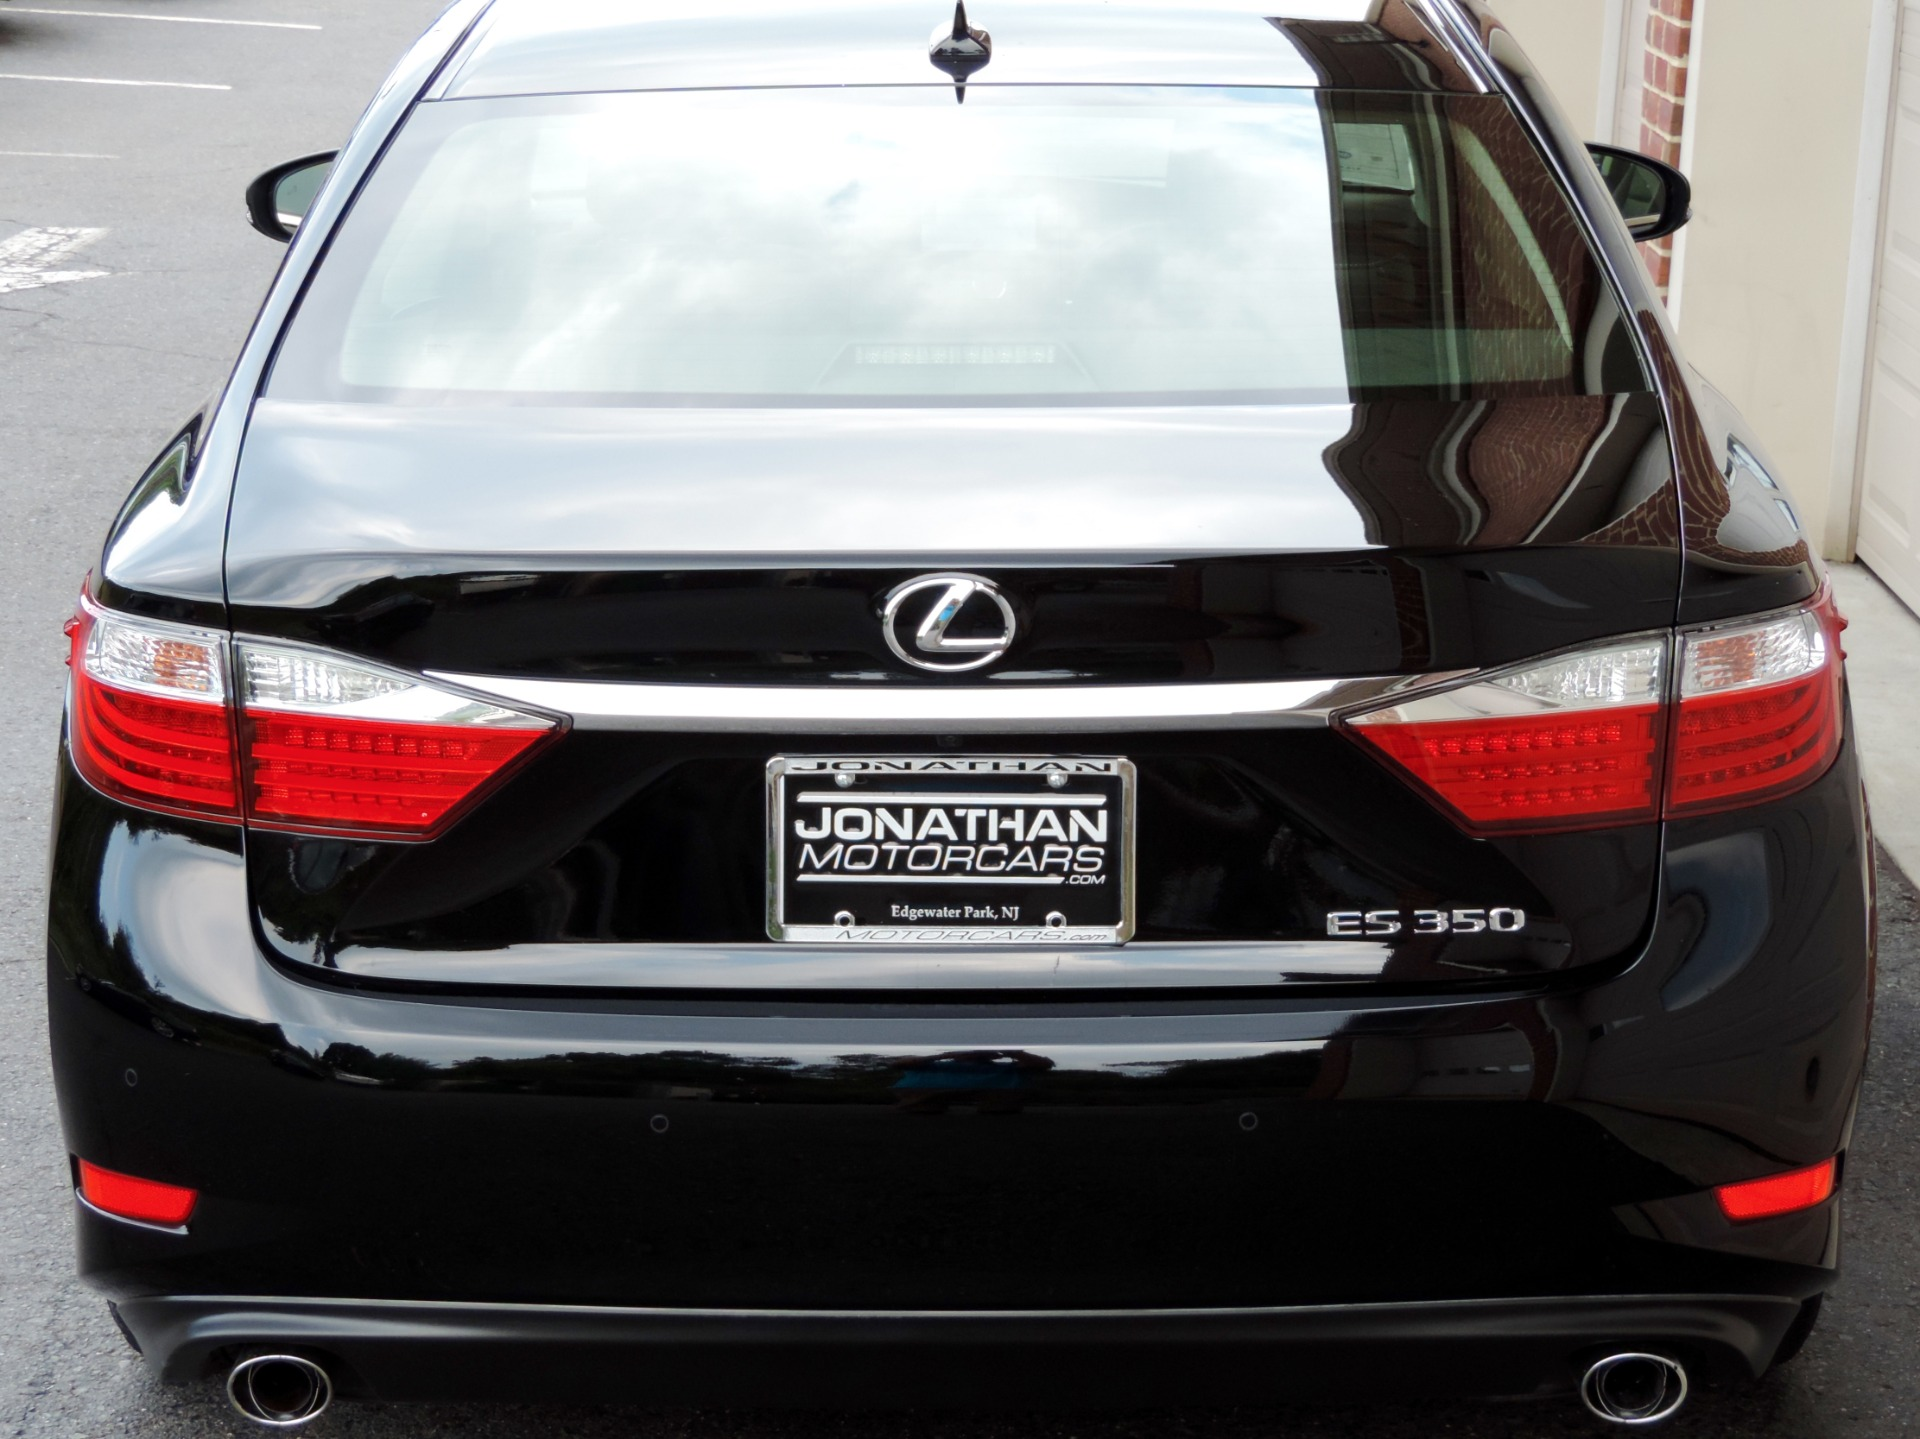 2014 Lexus ES 350 Sedan Stock for sale near Edgewater